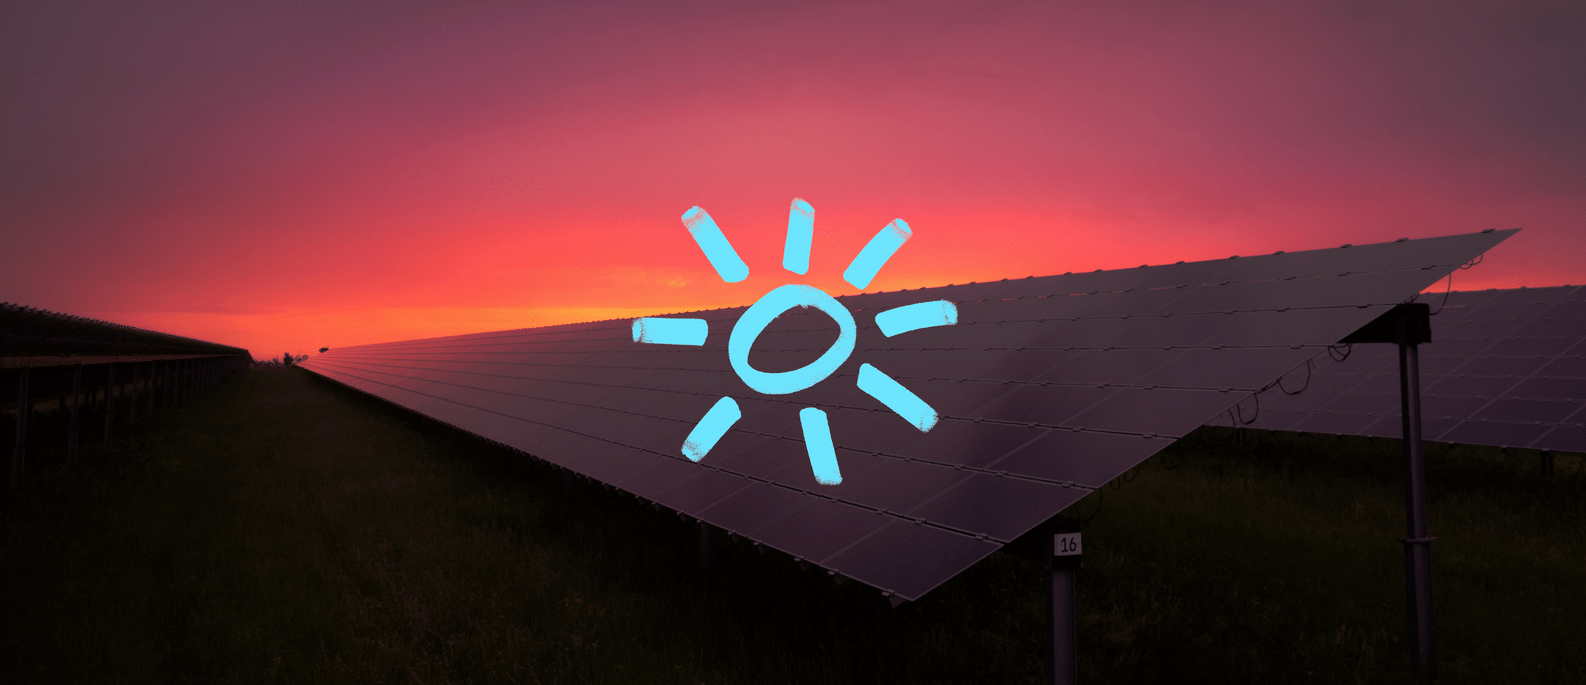 A solar panel farm providing renewable energy in Australia